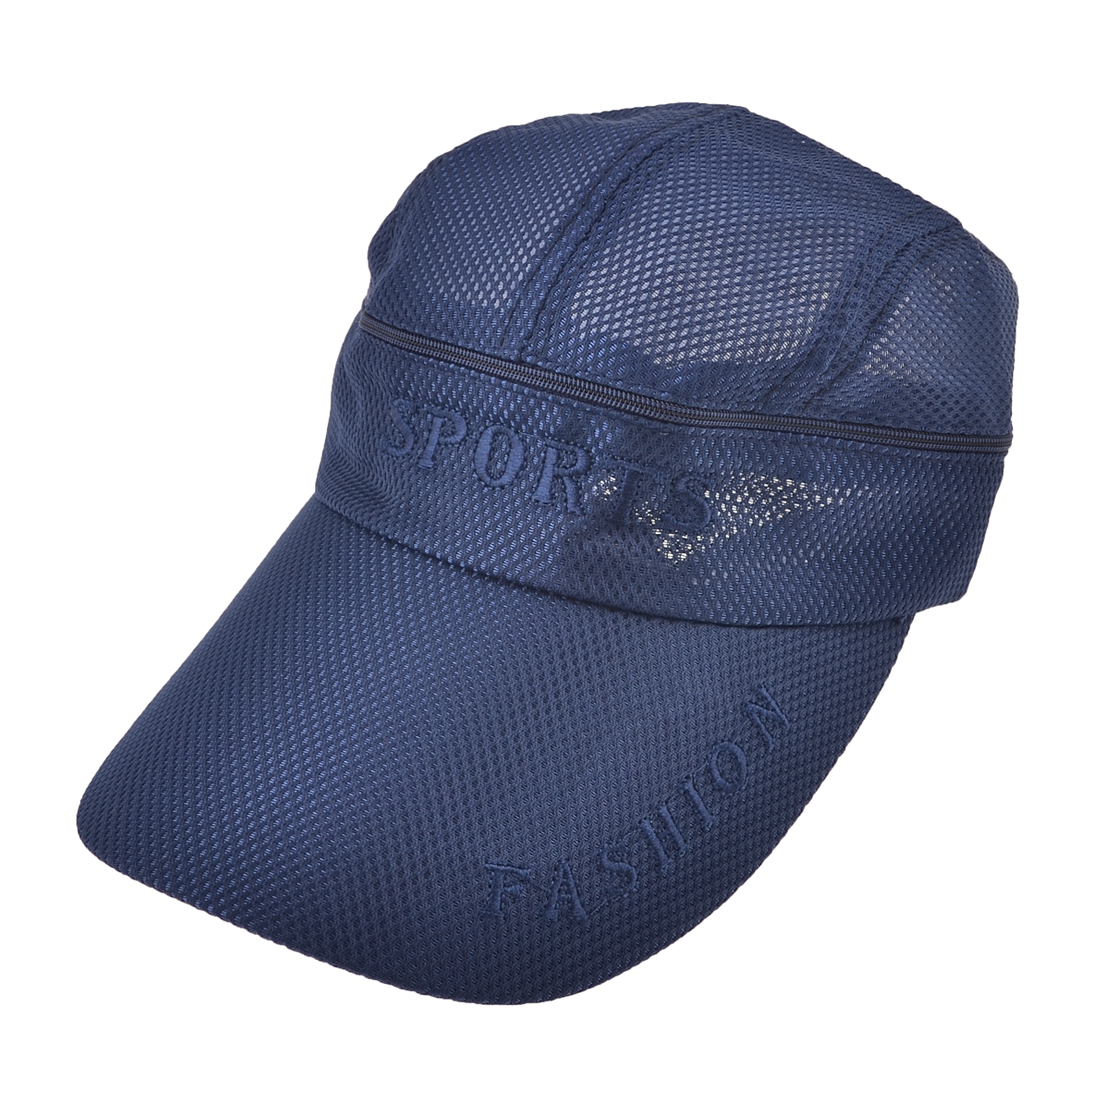 Dark Blue Letter Print Summer Outdoor Mesh Wide Visor Sun Cap for Men